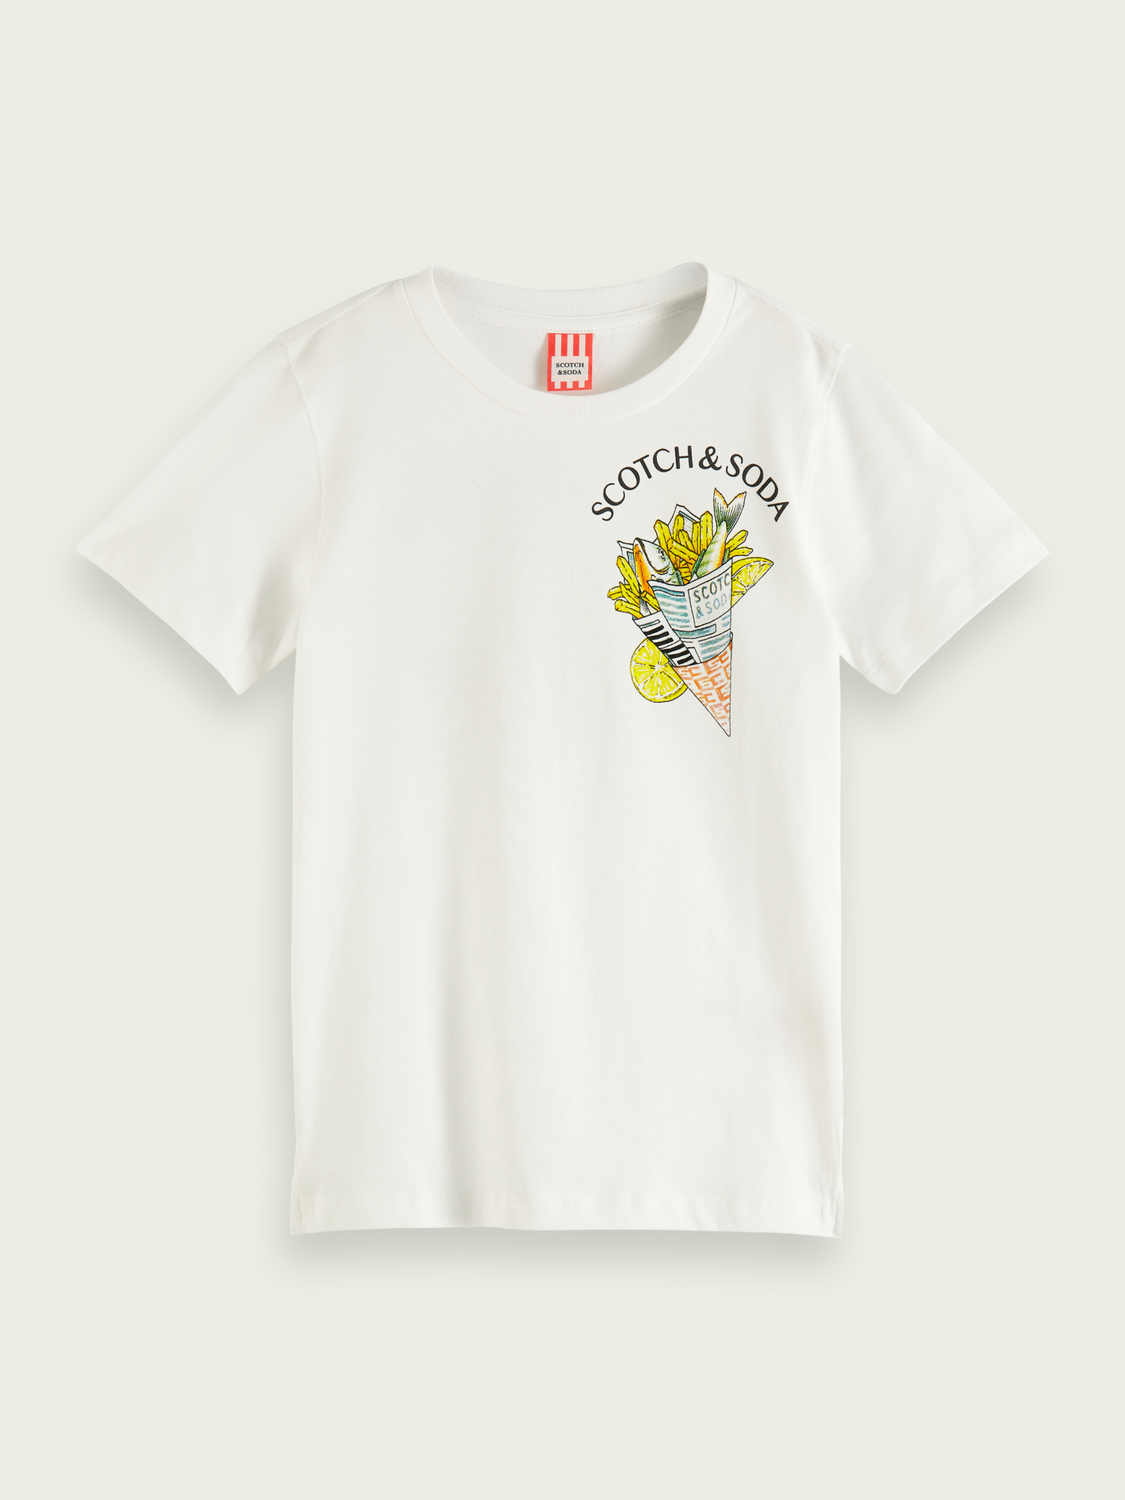 Kids T-shirt with fish and chips artwork